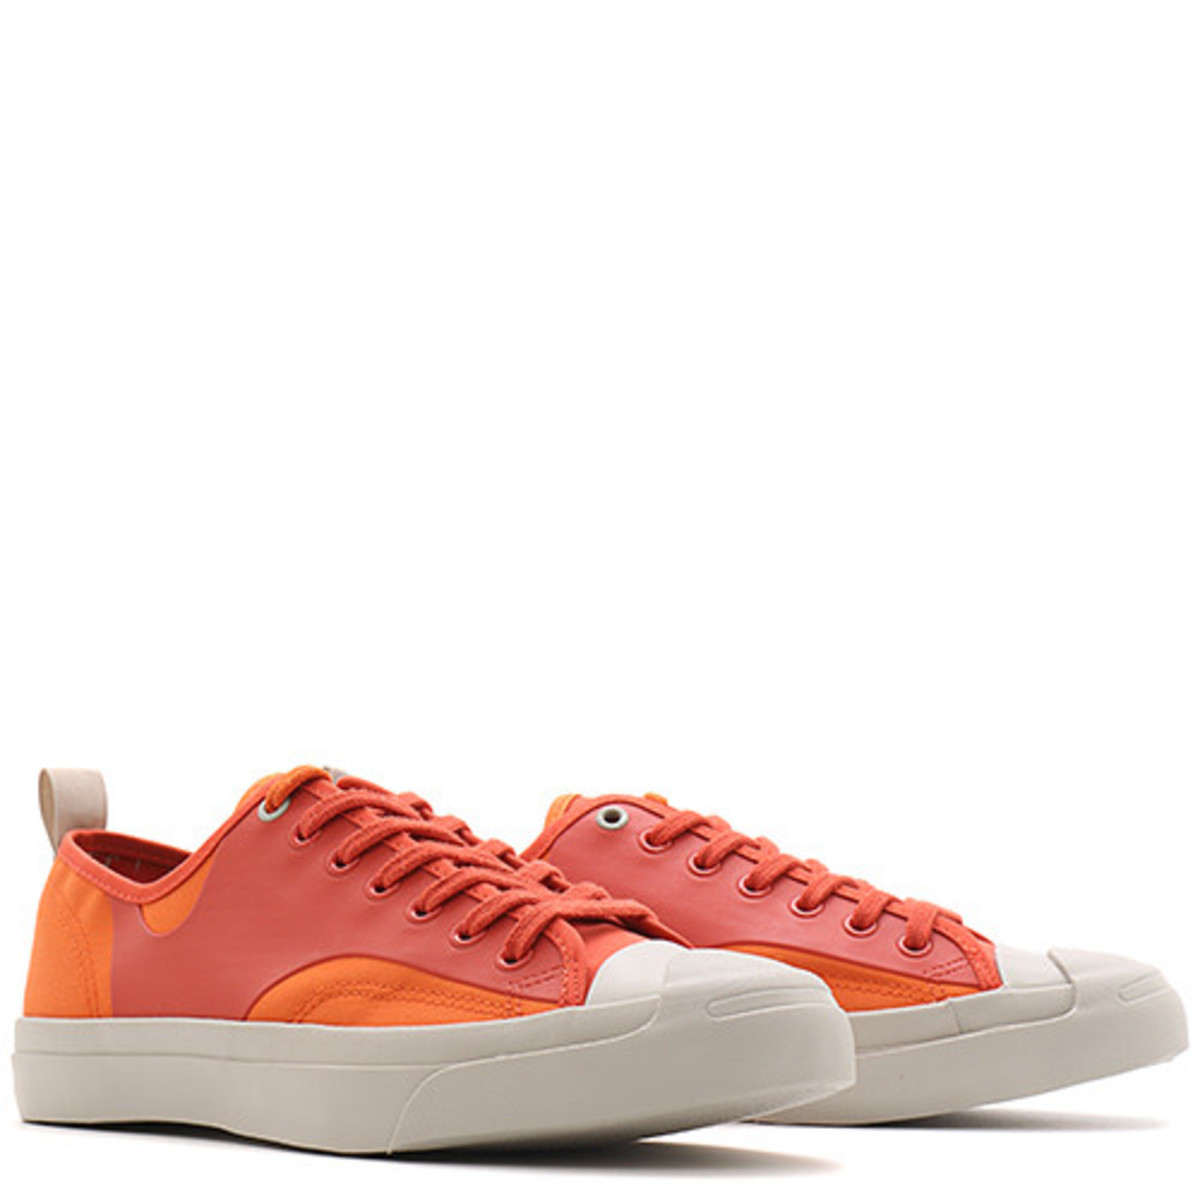 Men's CONVERSE FIRST STRING JACK PURCELL HANCOCK RALLY OX ORANGE